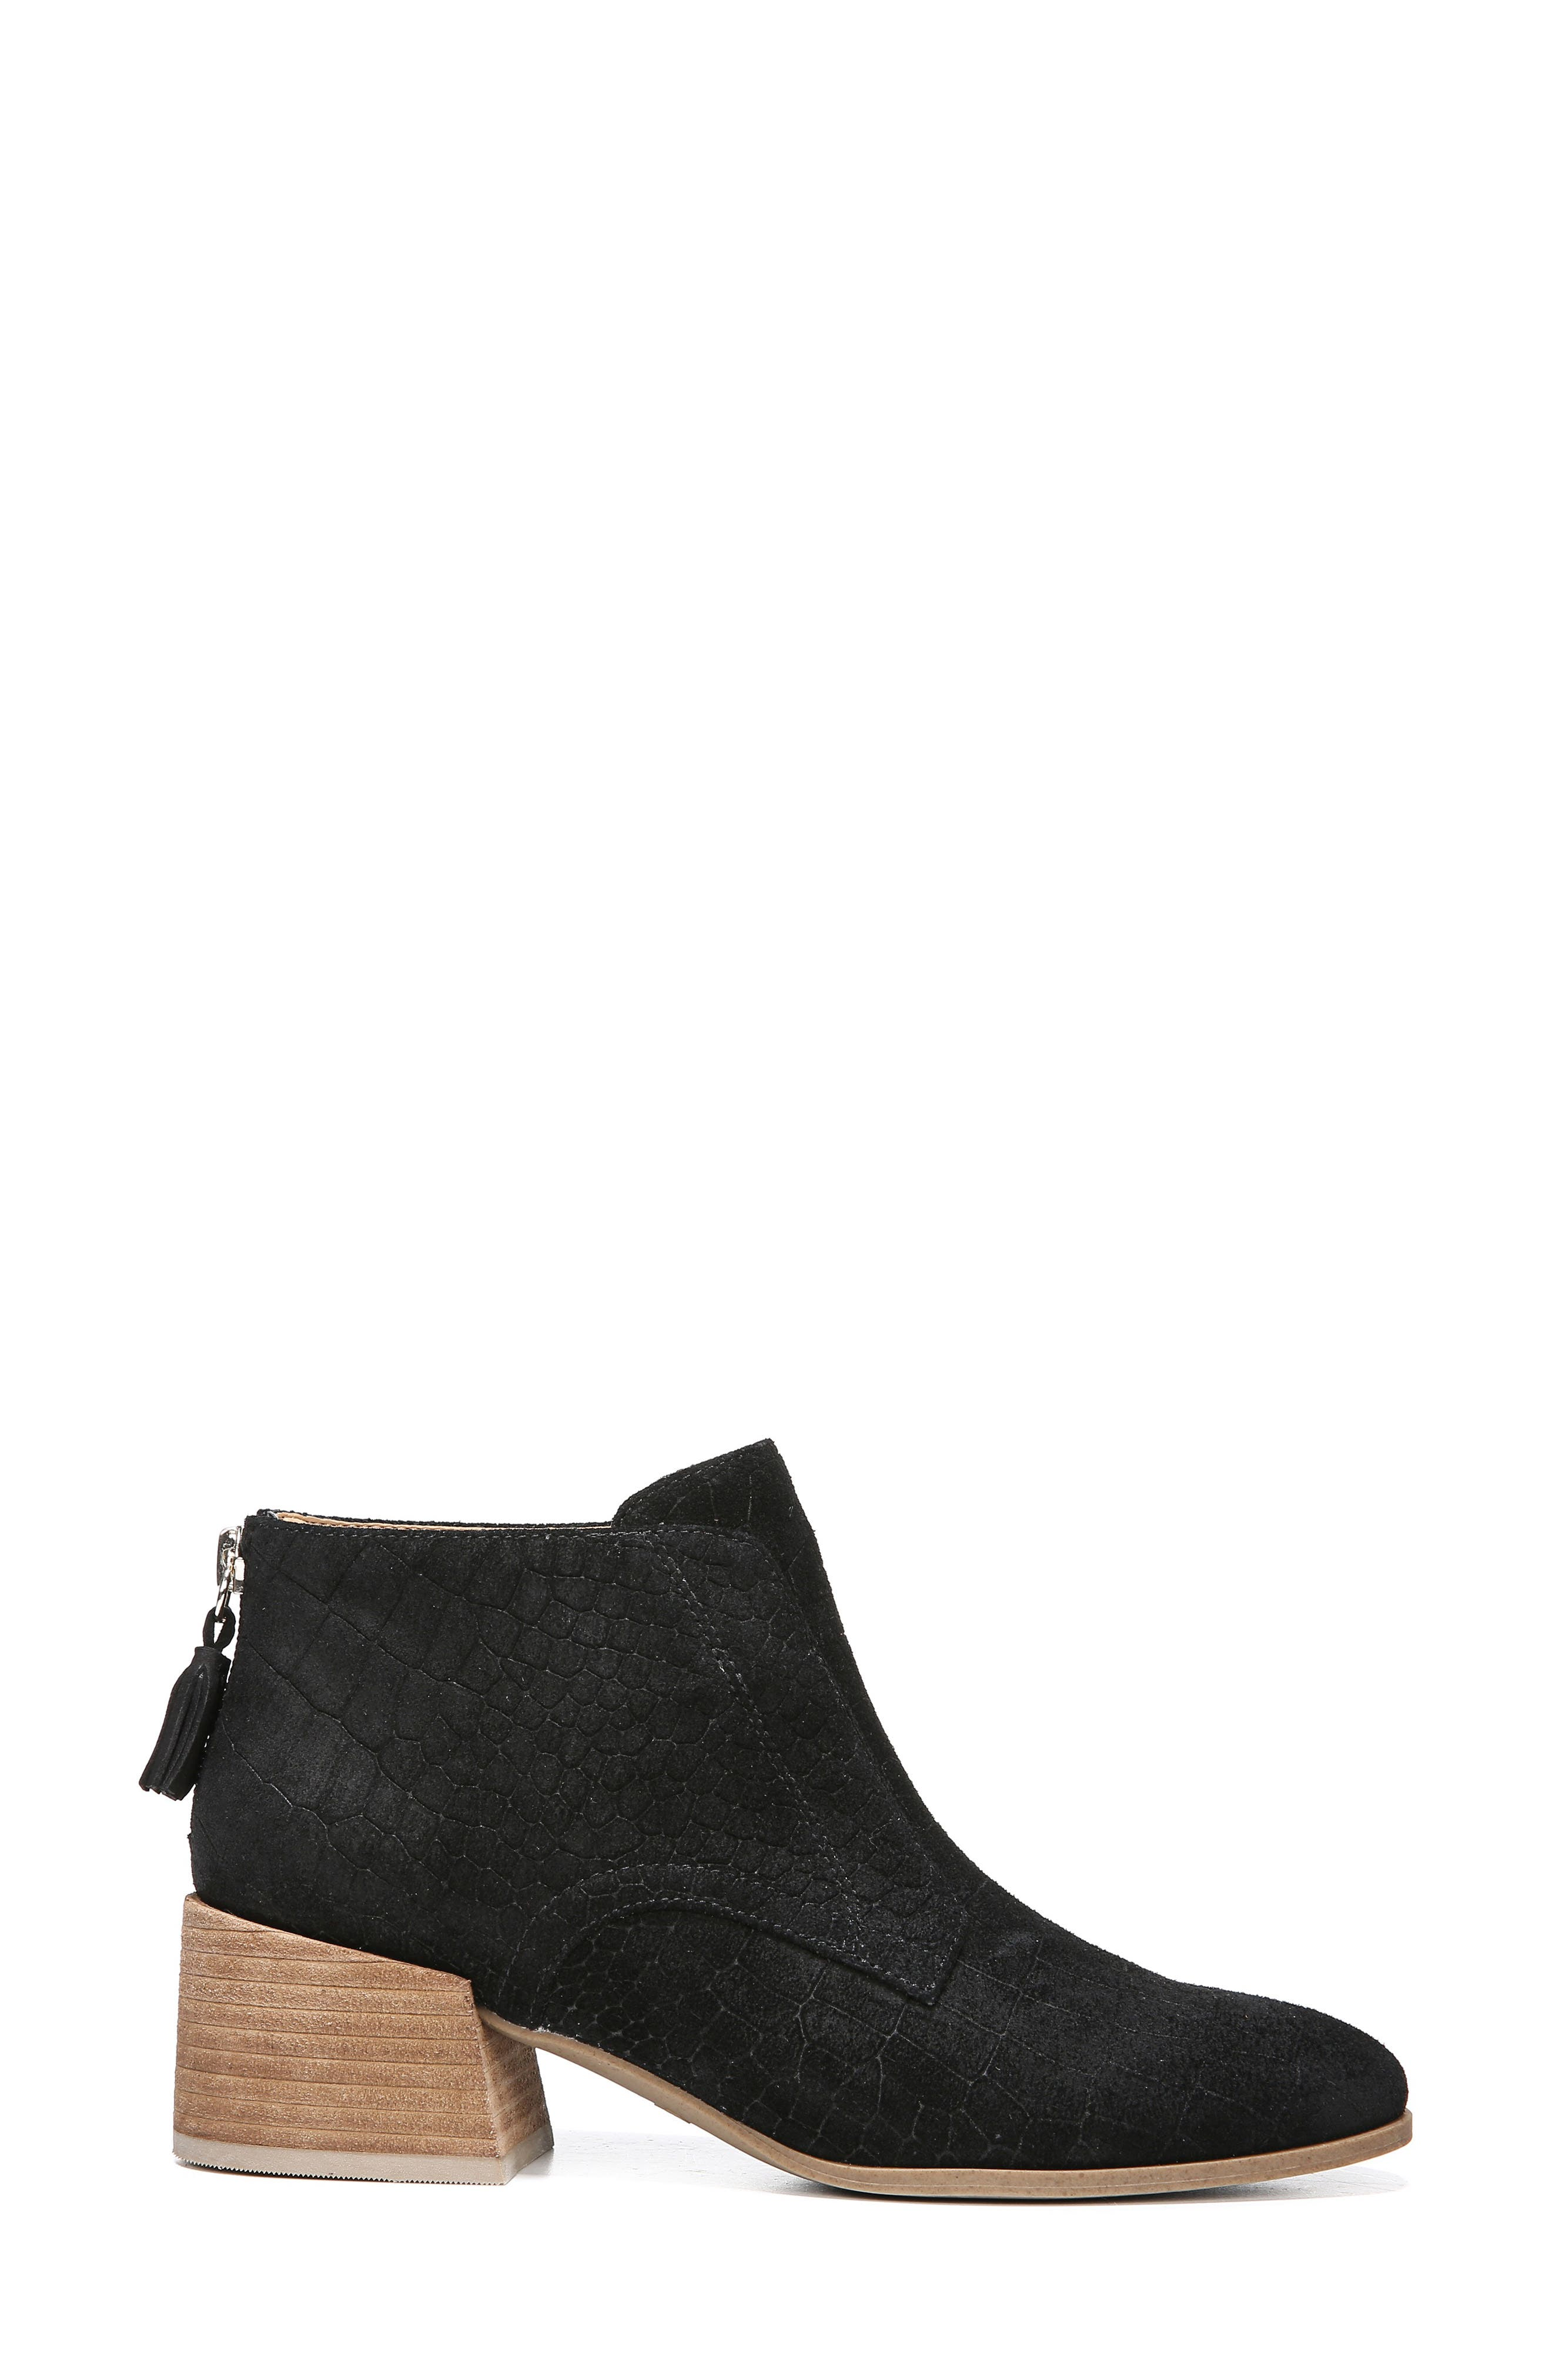 Bianca Bootie,                             Alternate thumbnail 3, color,                             BLACK LEATHER